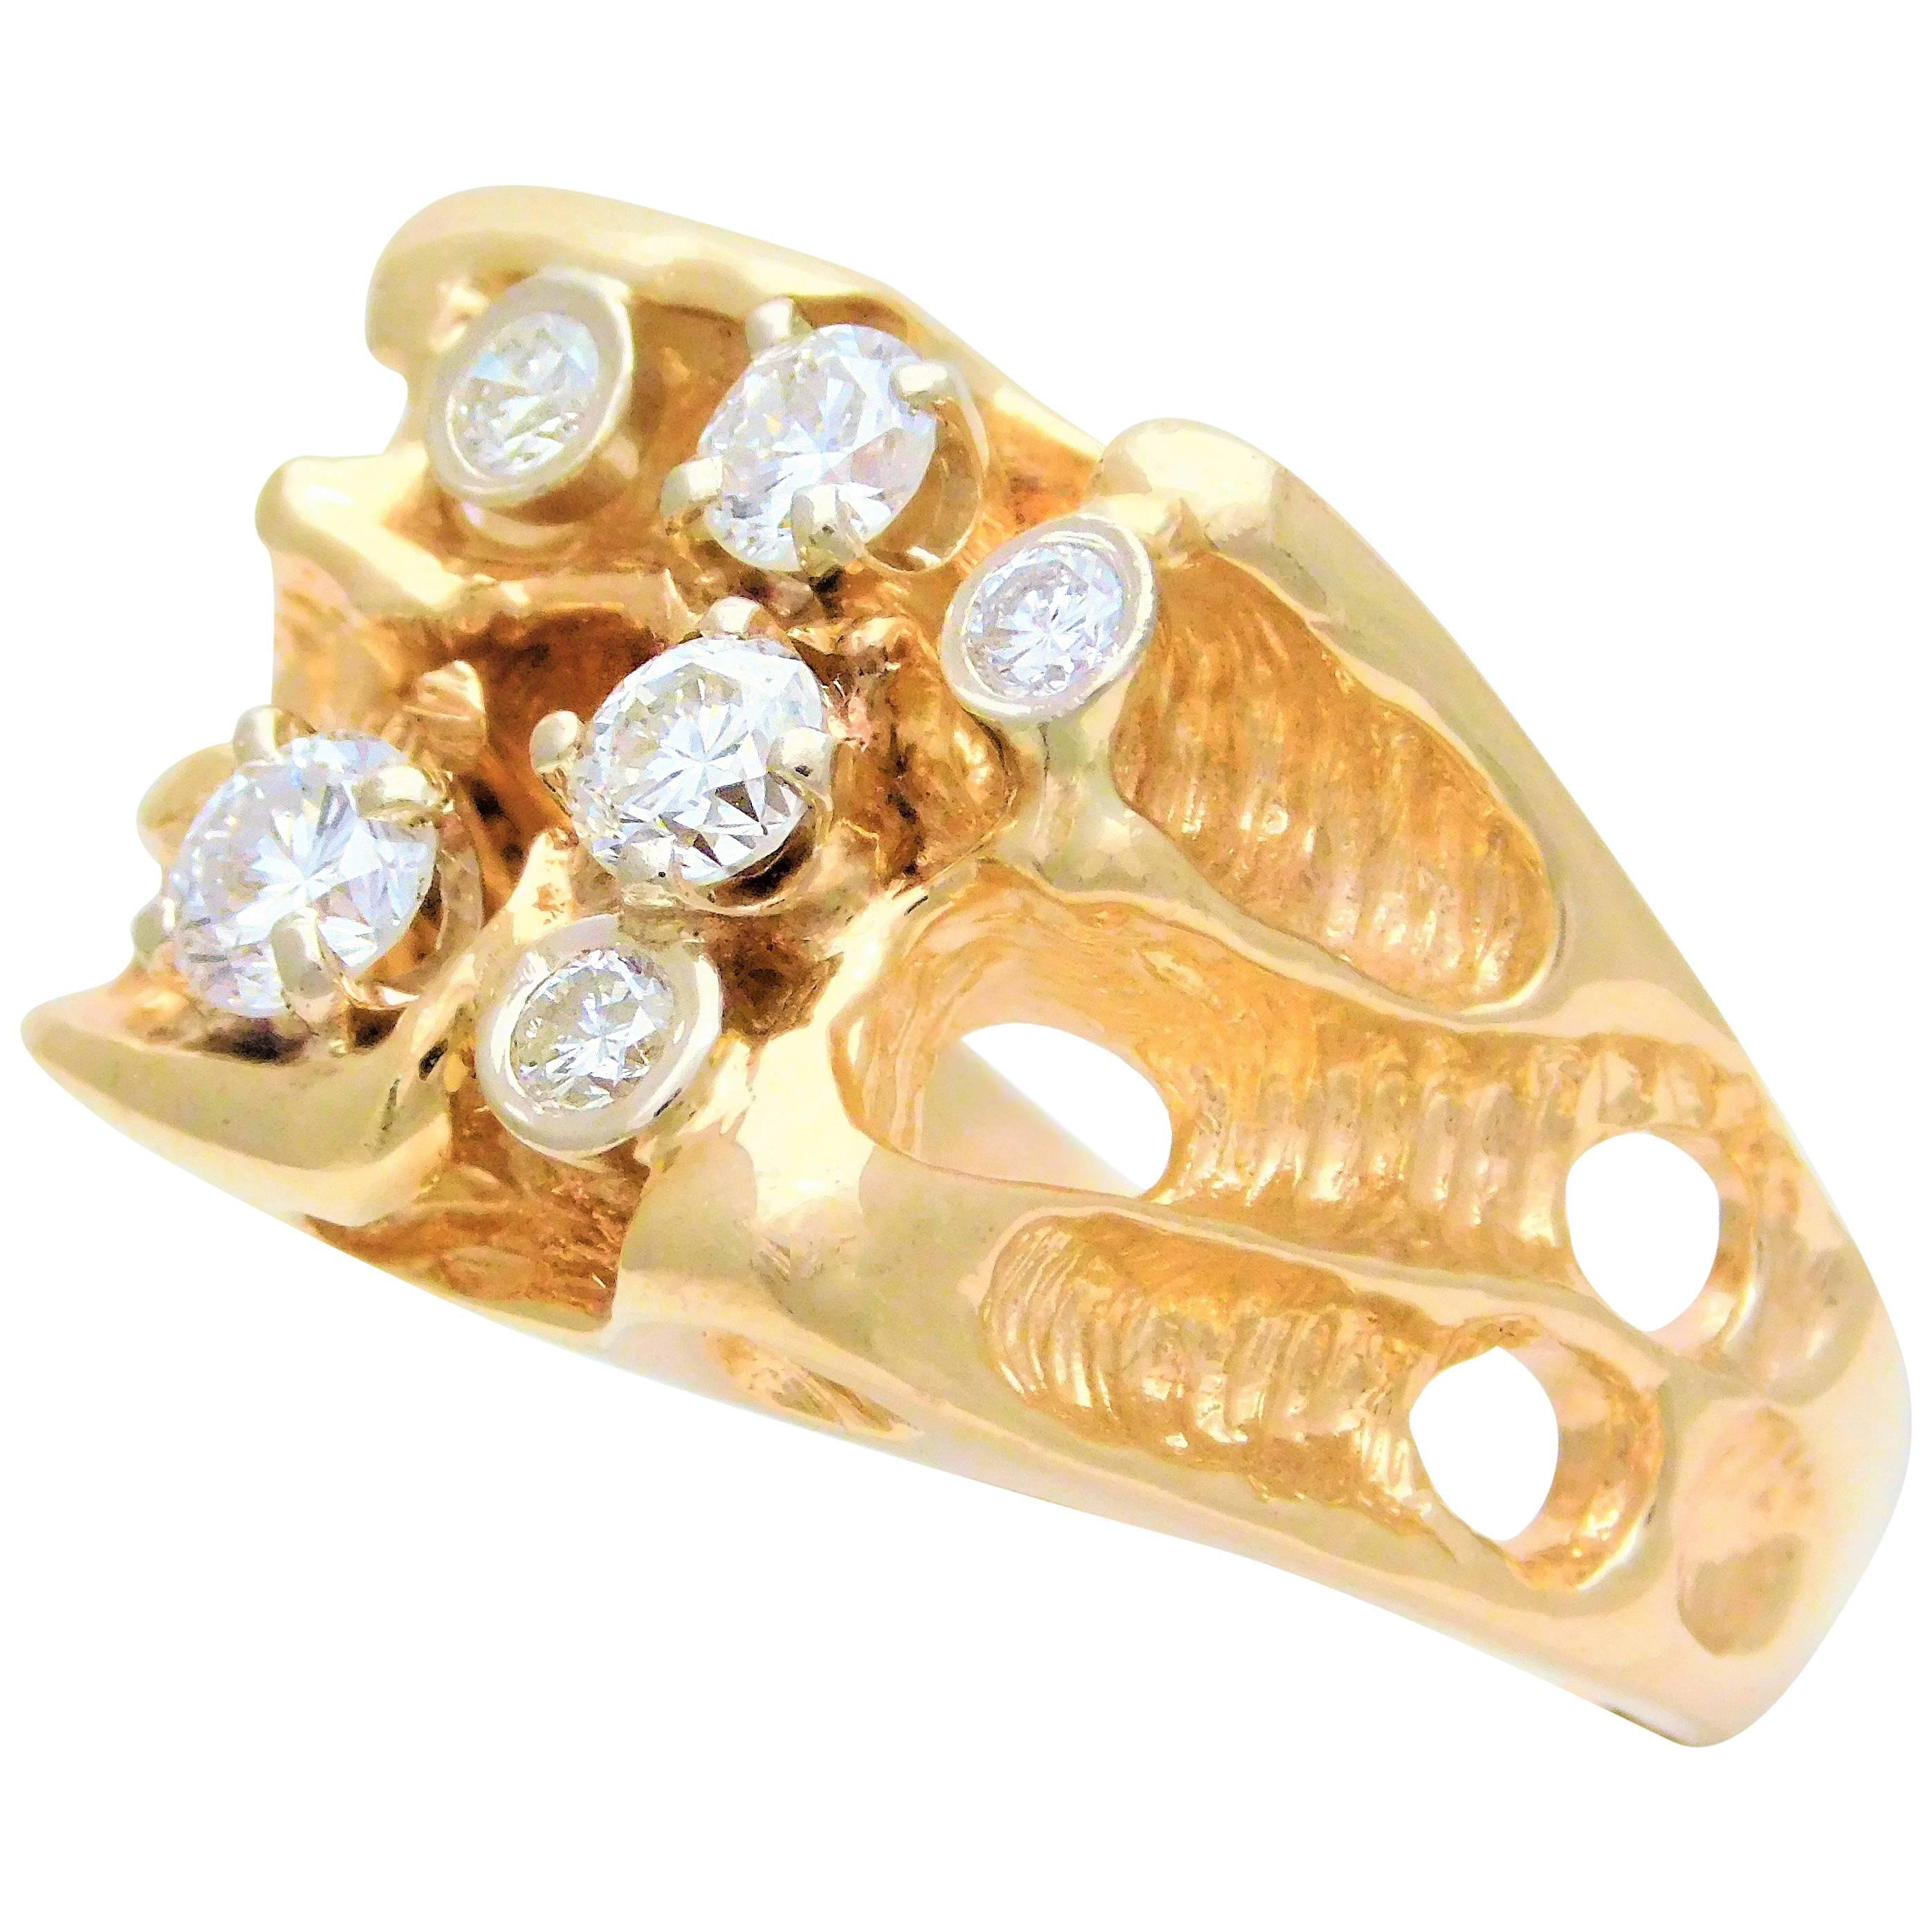 gents 14 karat yellow gold ring with diamonds